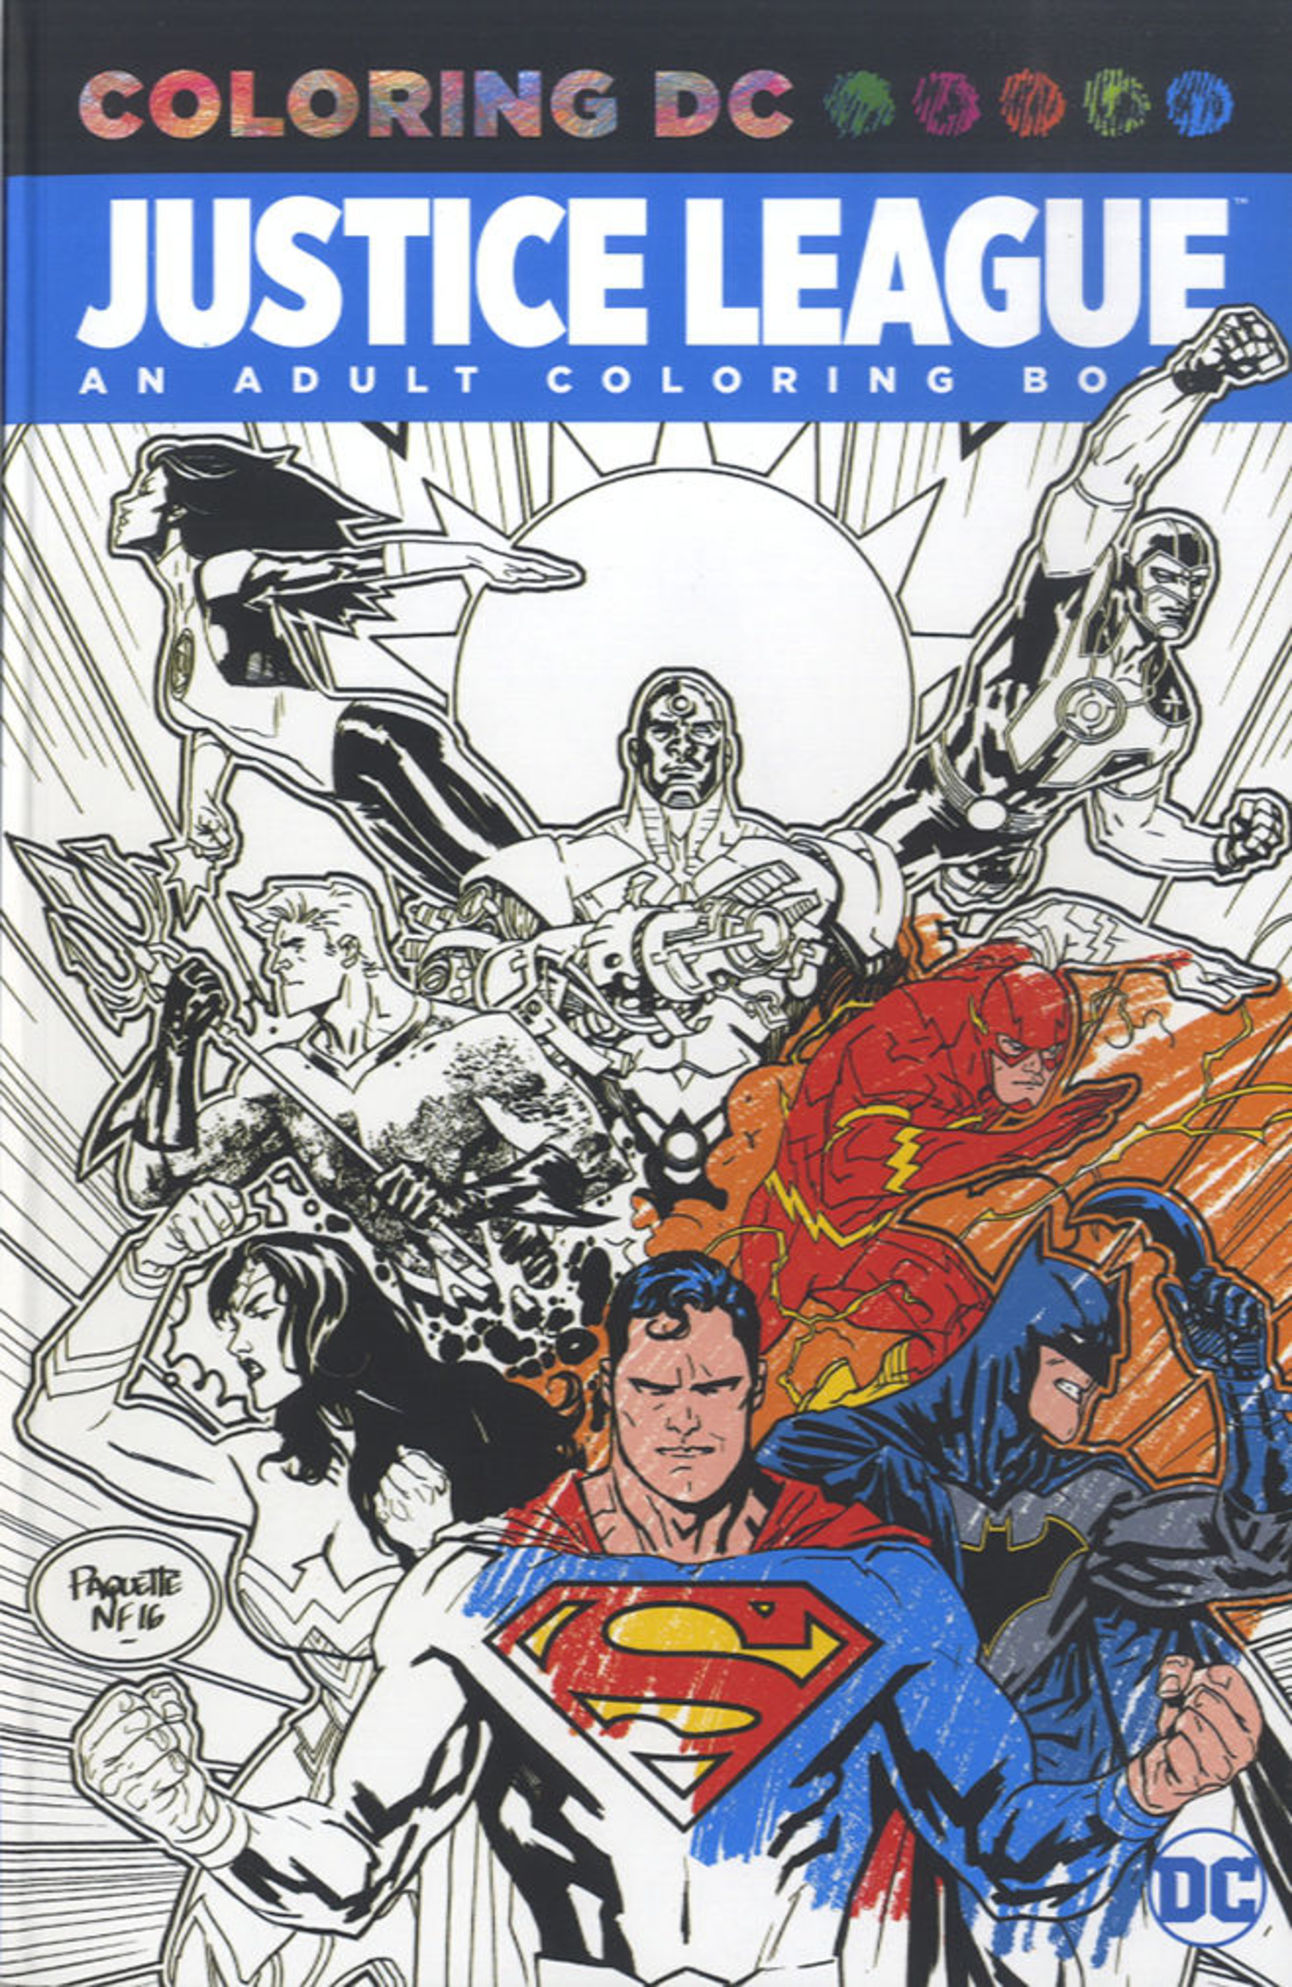 Justice League Coloring Book